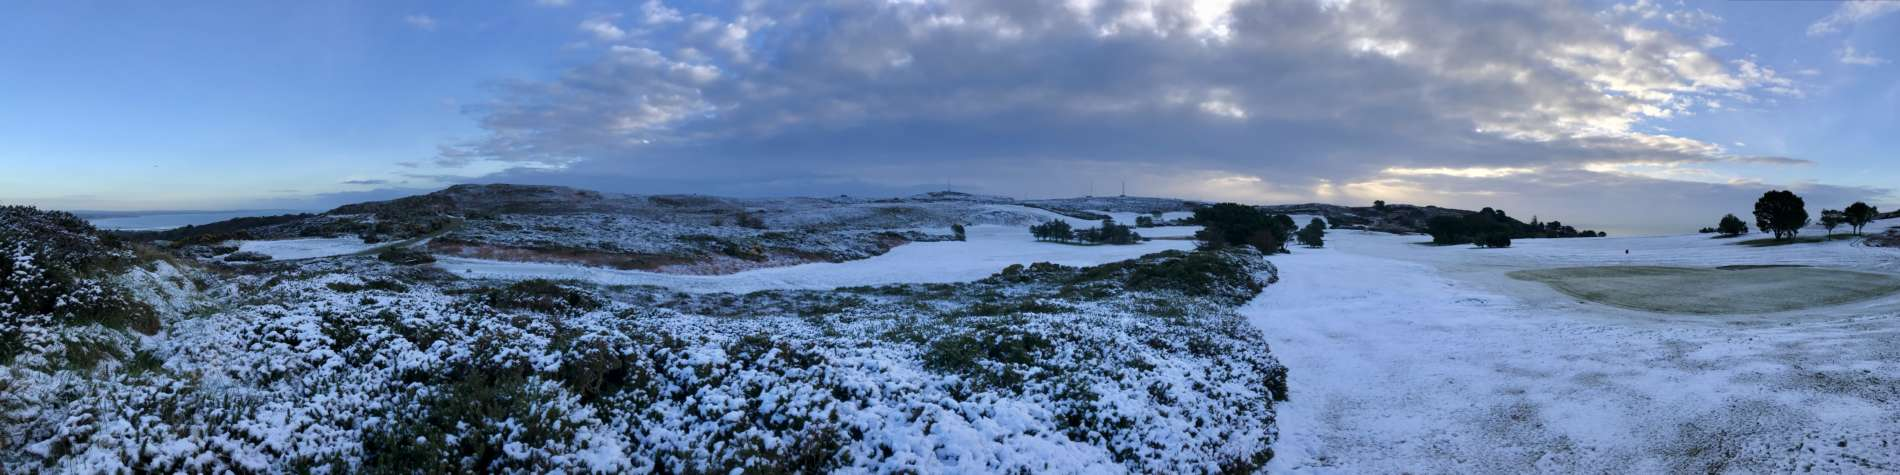 Snow at Howth Golf Club Dublin, Ireland